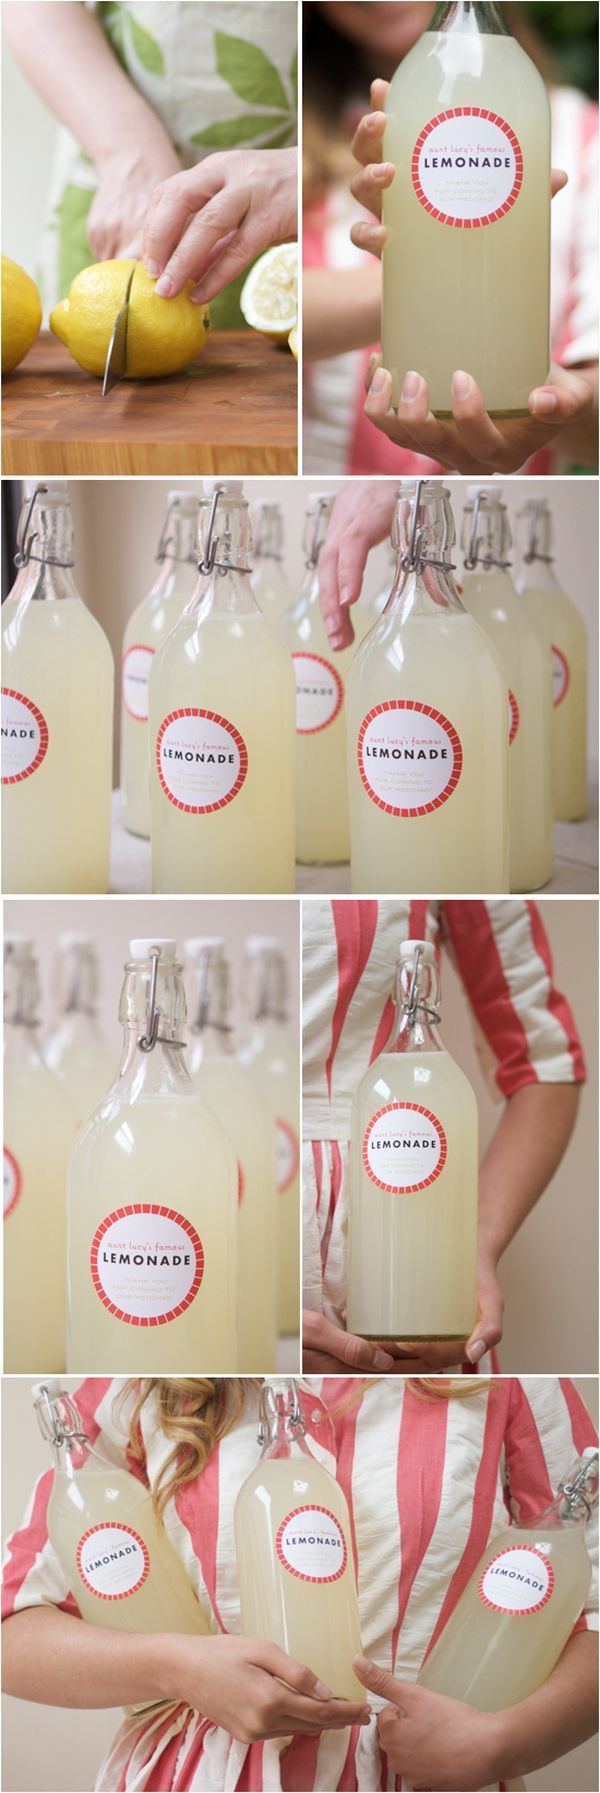 20 DIY Wedding Favors Your Guests Will Love and Use - Homedit